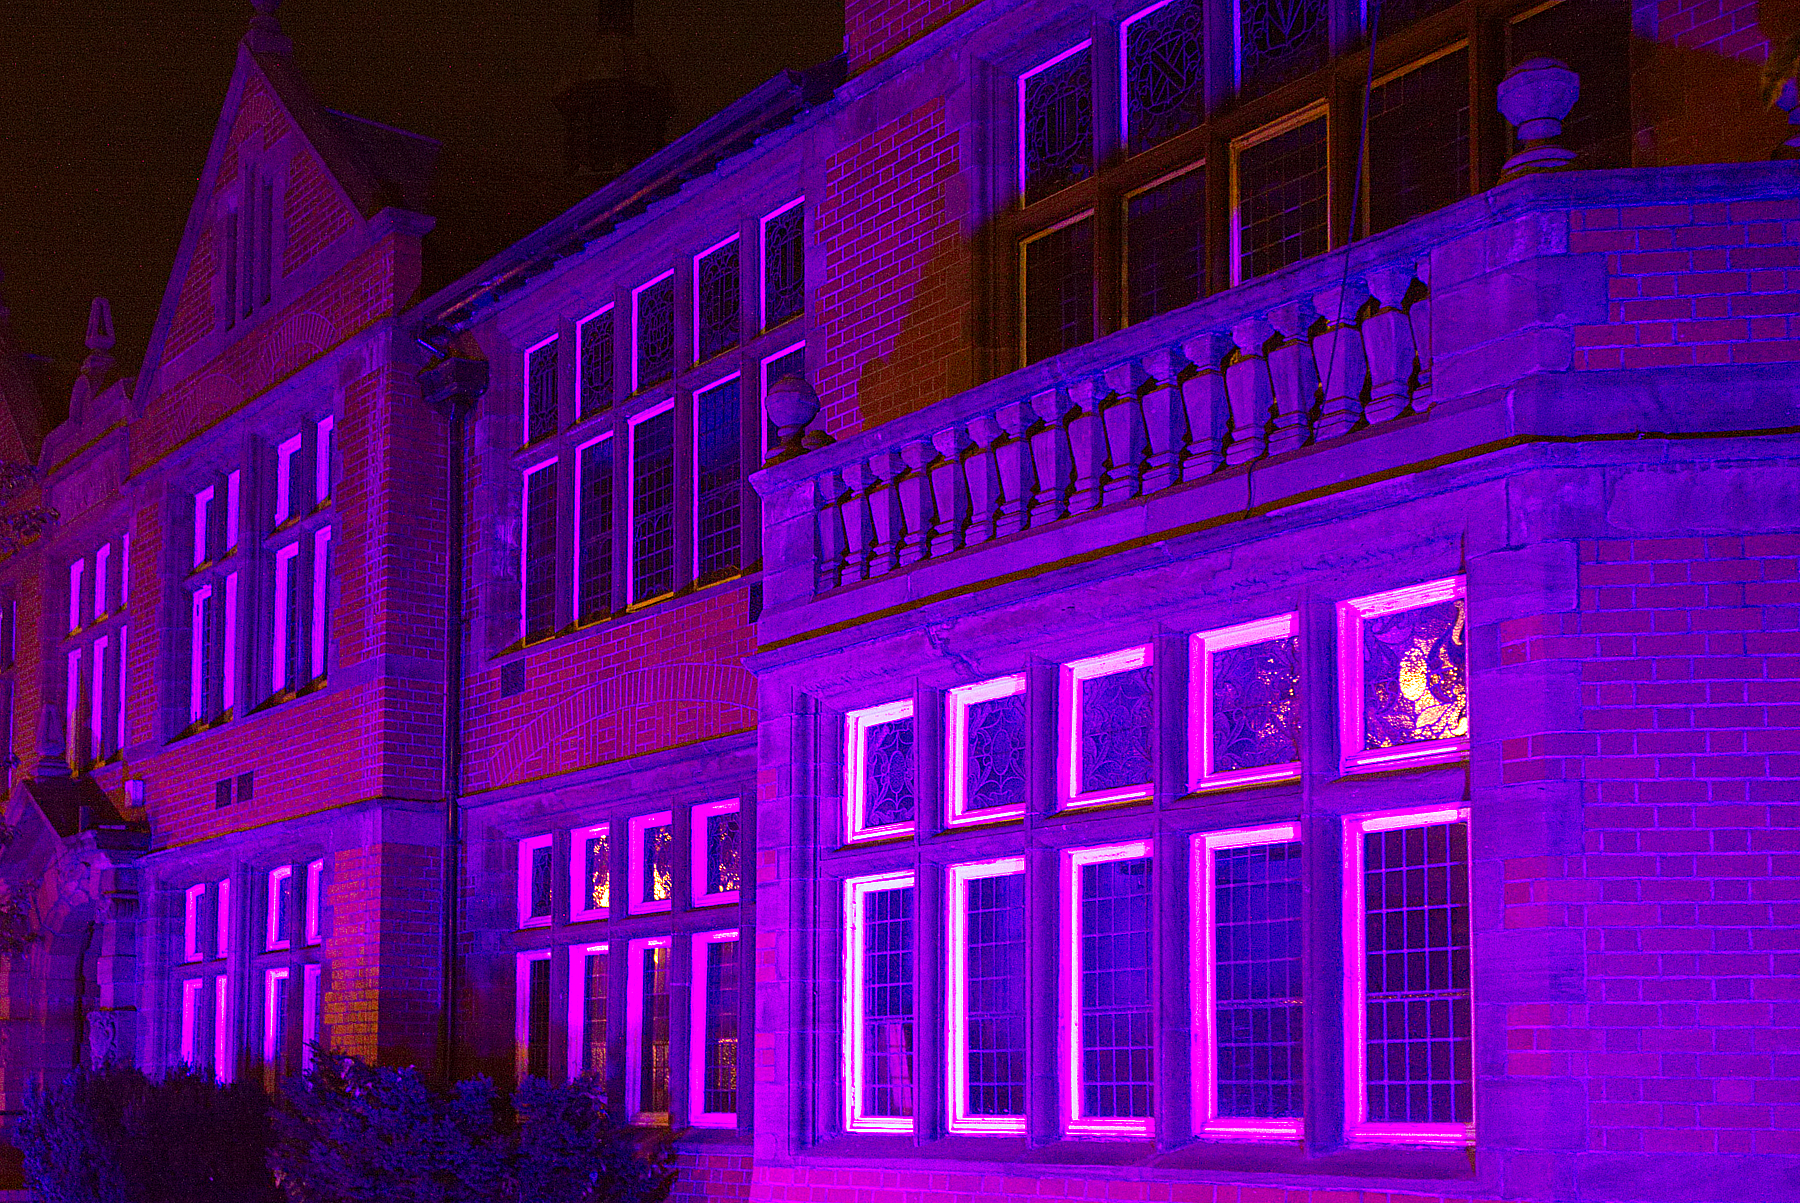 Altrincham Town Hall will be lit up in purple for Rotary World Polio Day on Wednesday, October 24.